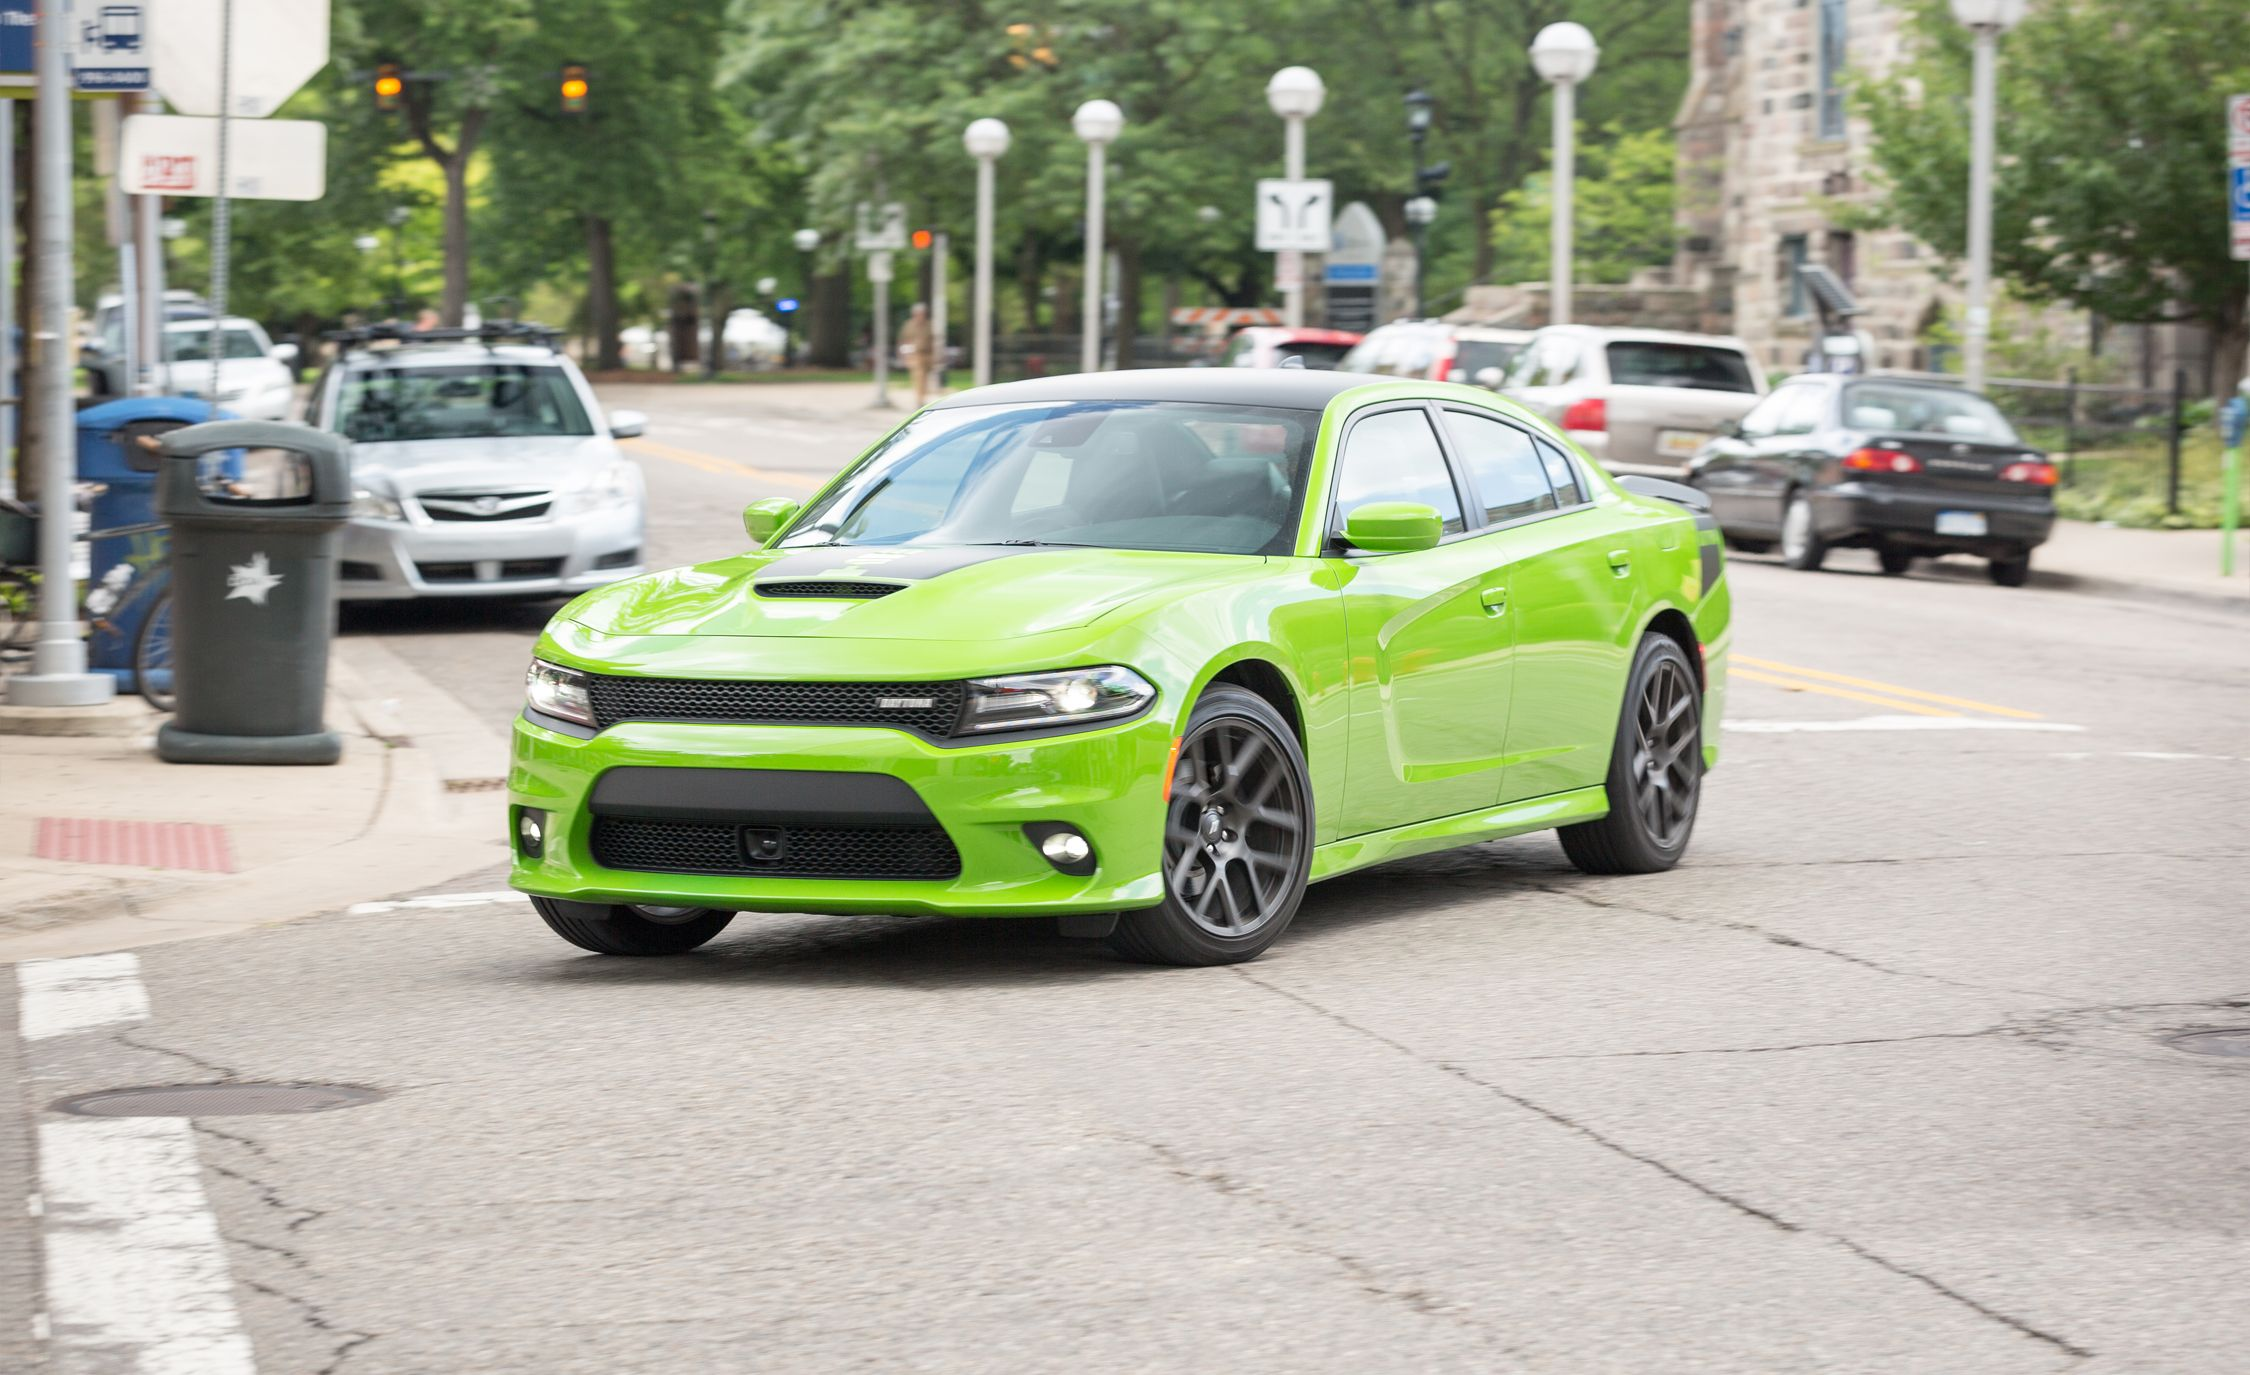 Awesome 2017 Dodge Charger Daytona 5.7L V 8